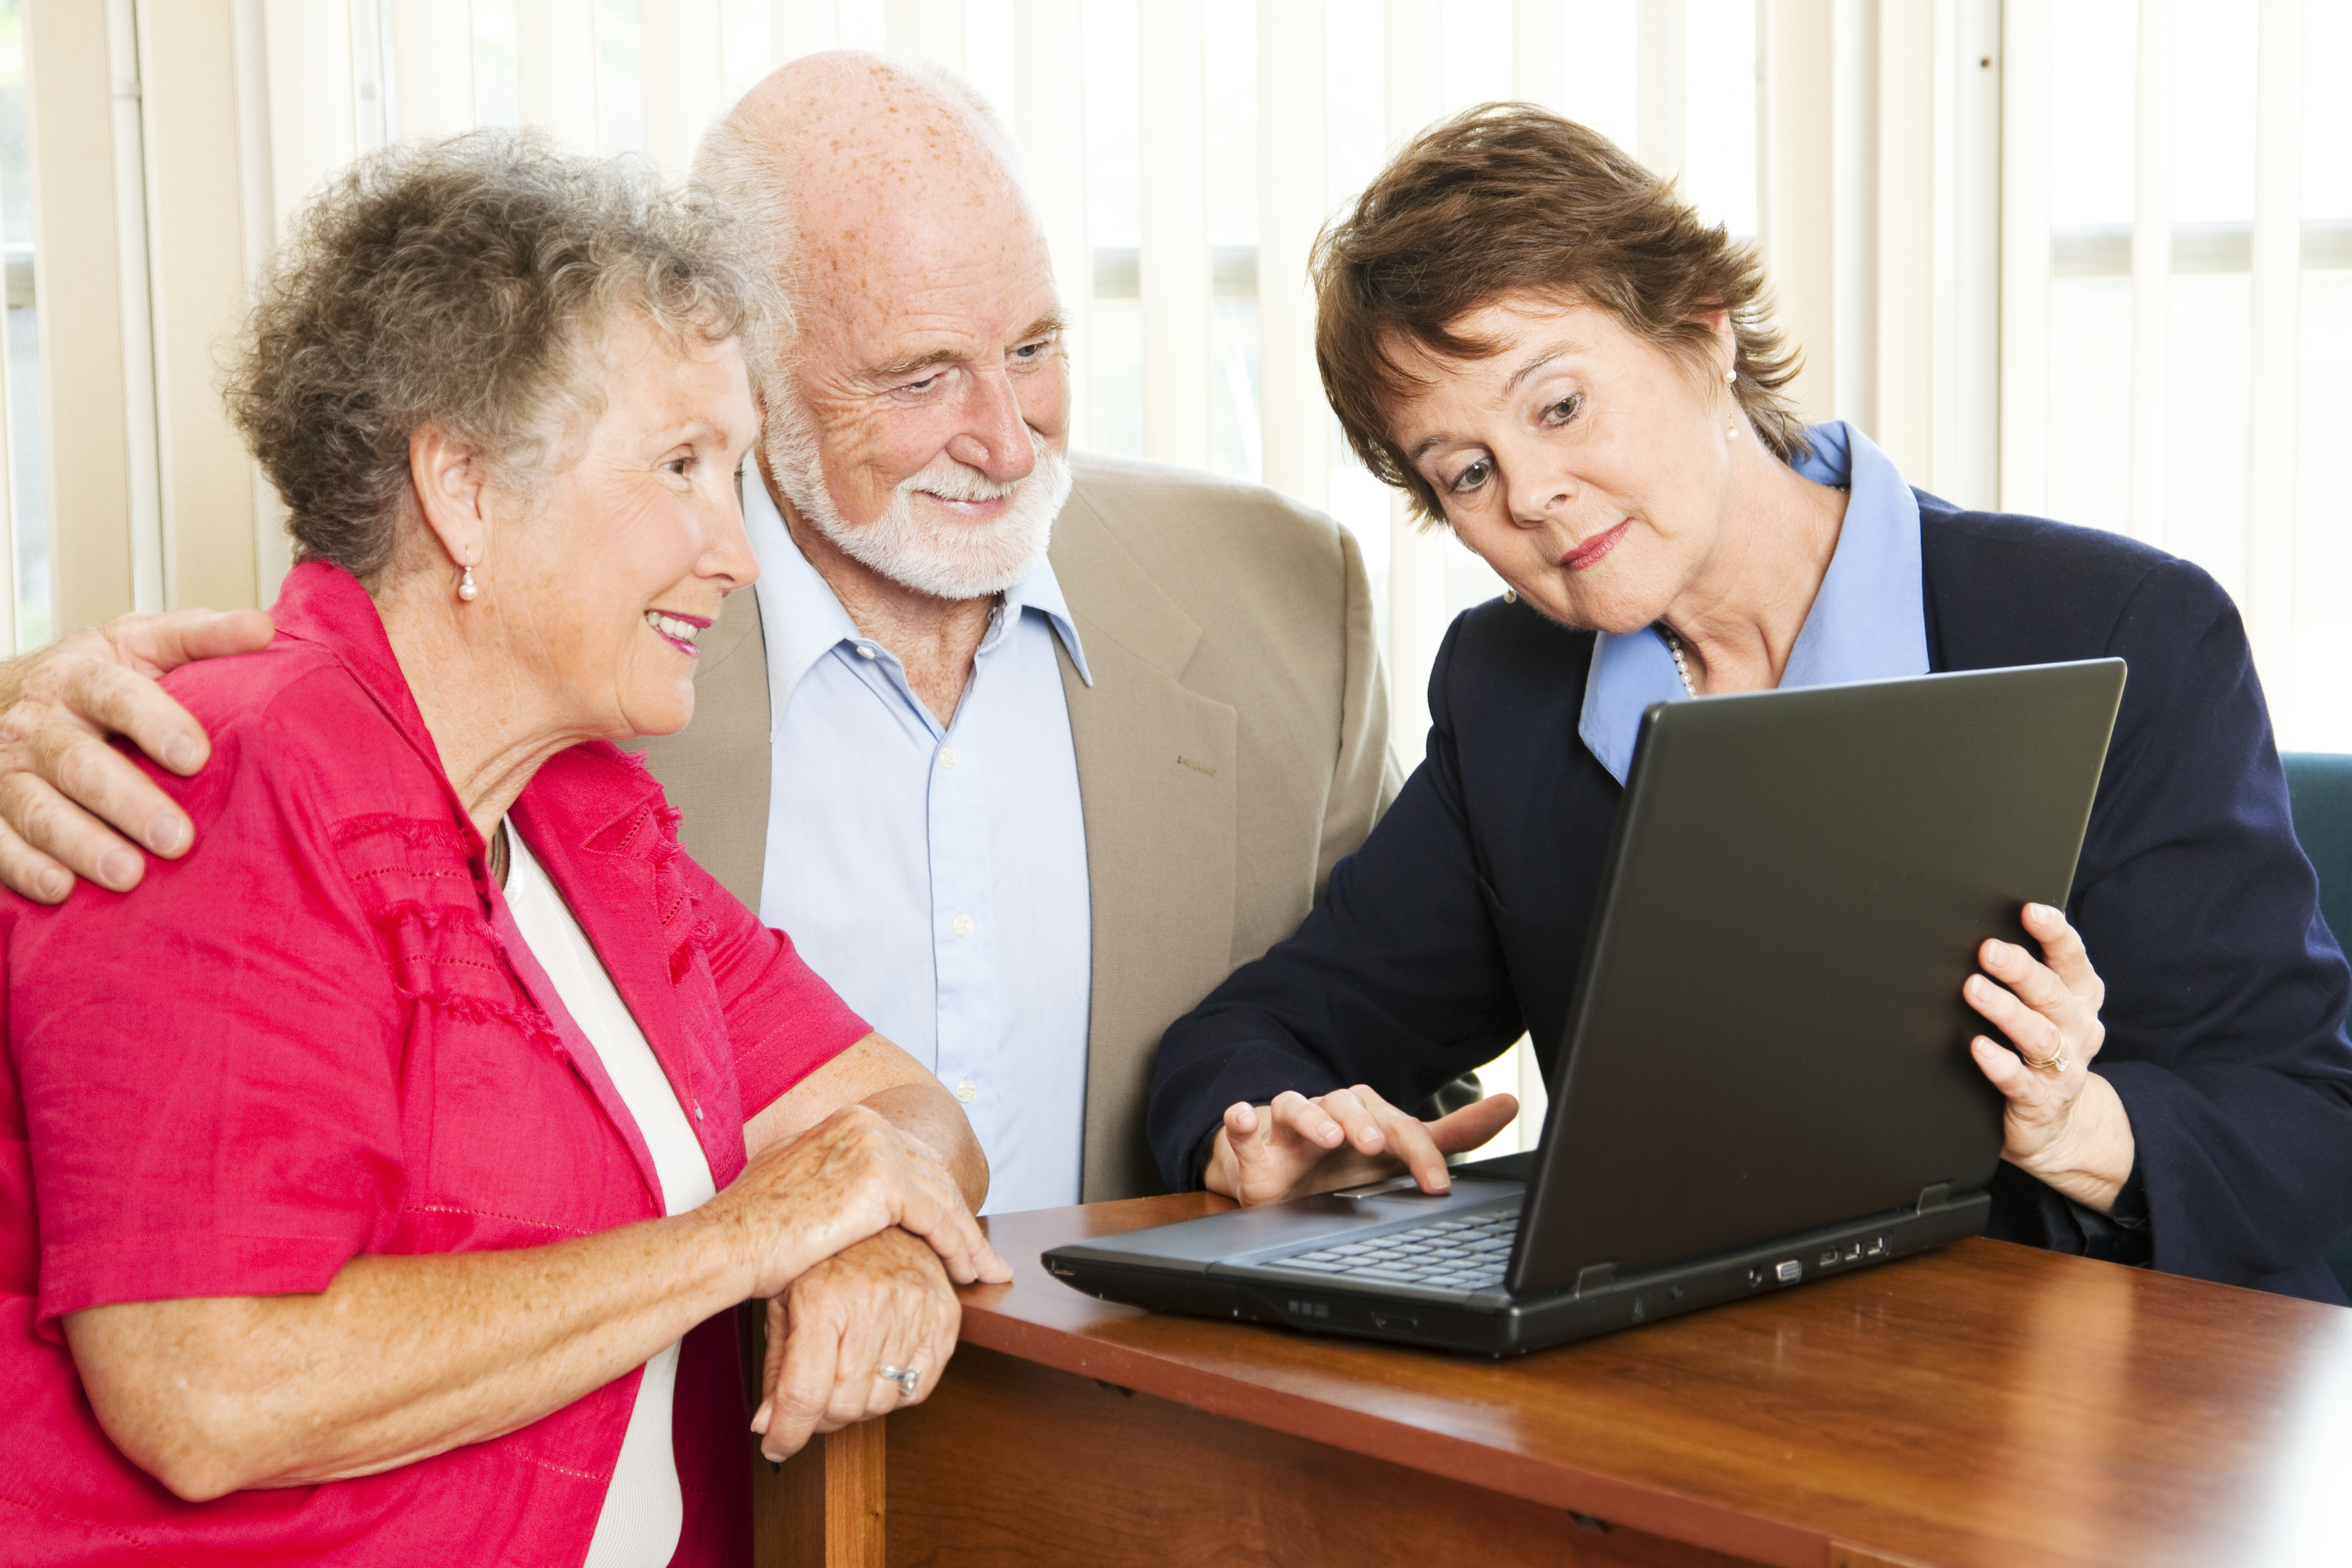 During Medicare Open Enrollment, it is important for seniors to review their options with Medicare experts.